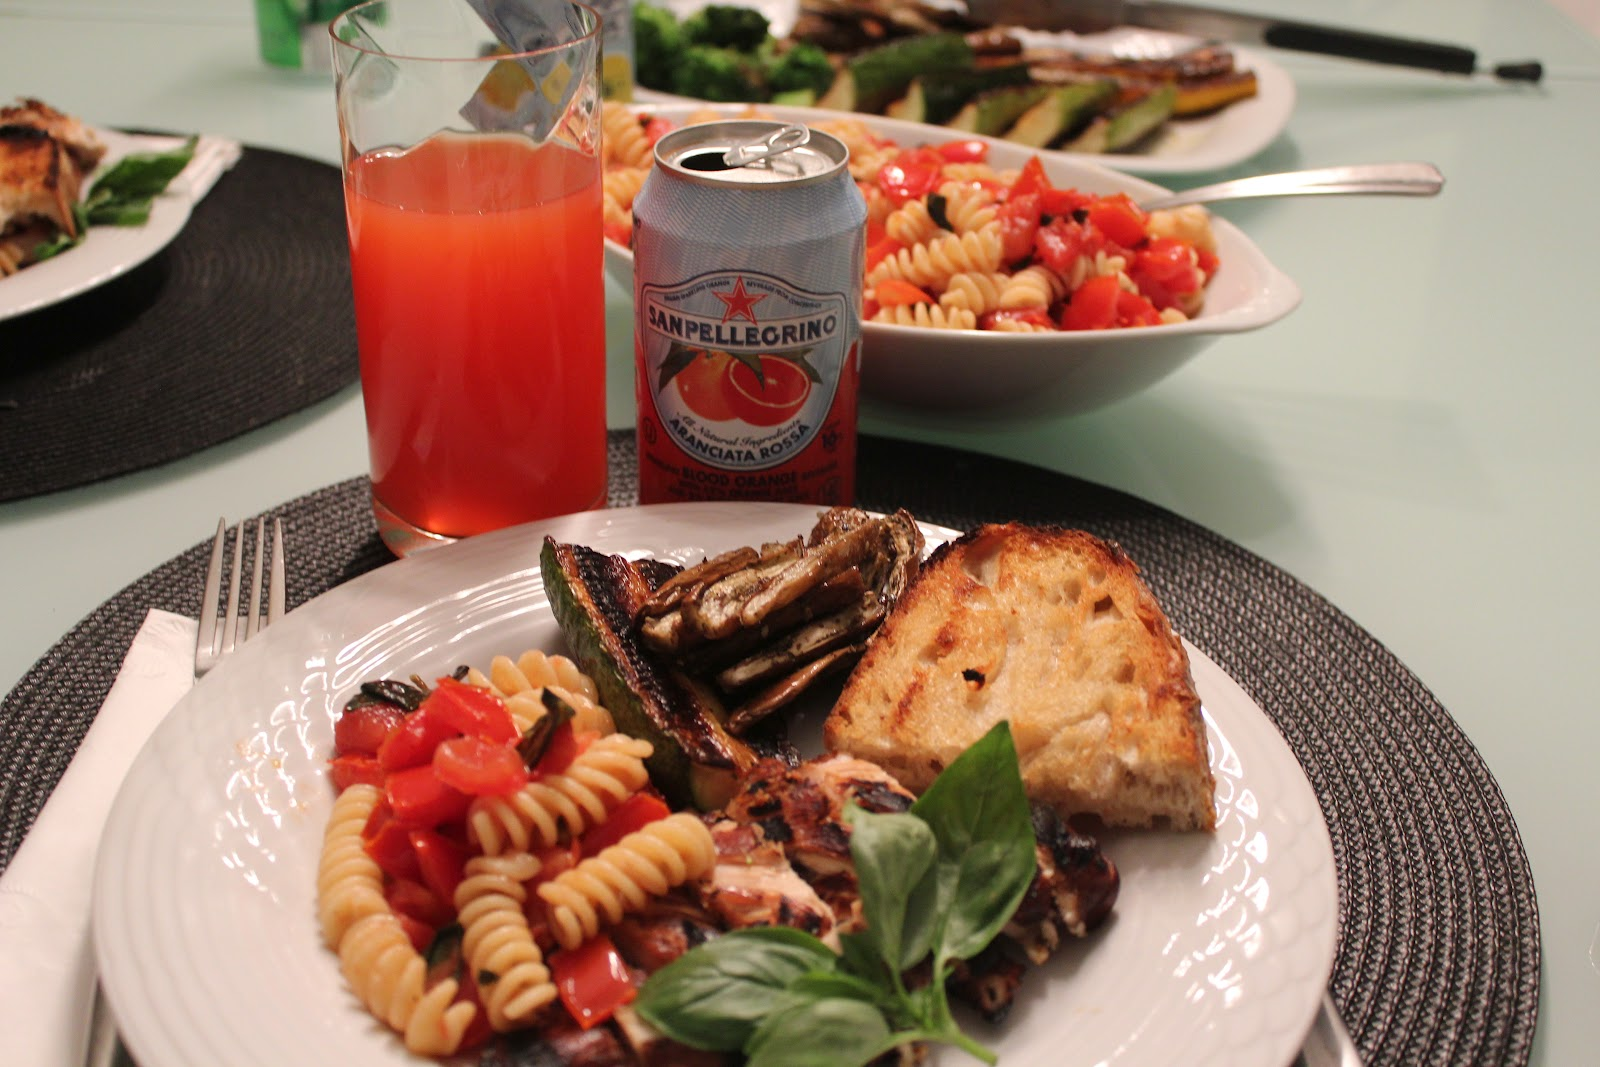 ... Dishings: Grilled Balsamic Chicken With Fusilli With Raw Tomato Sauce